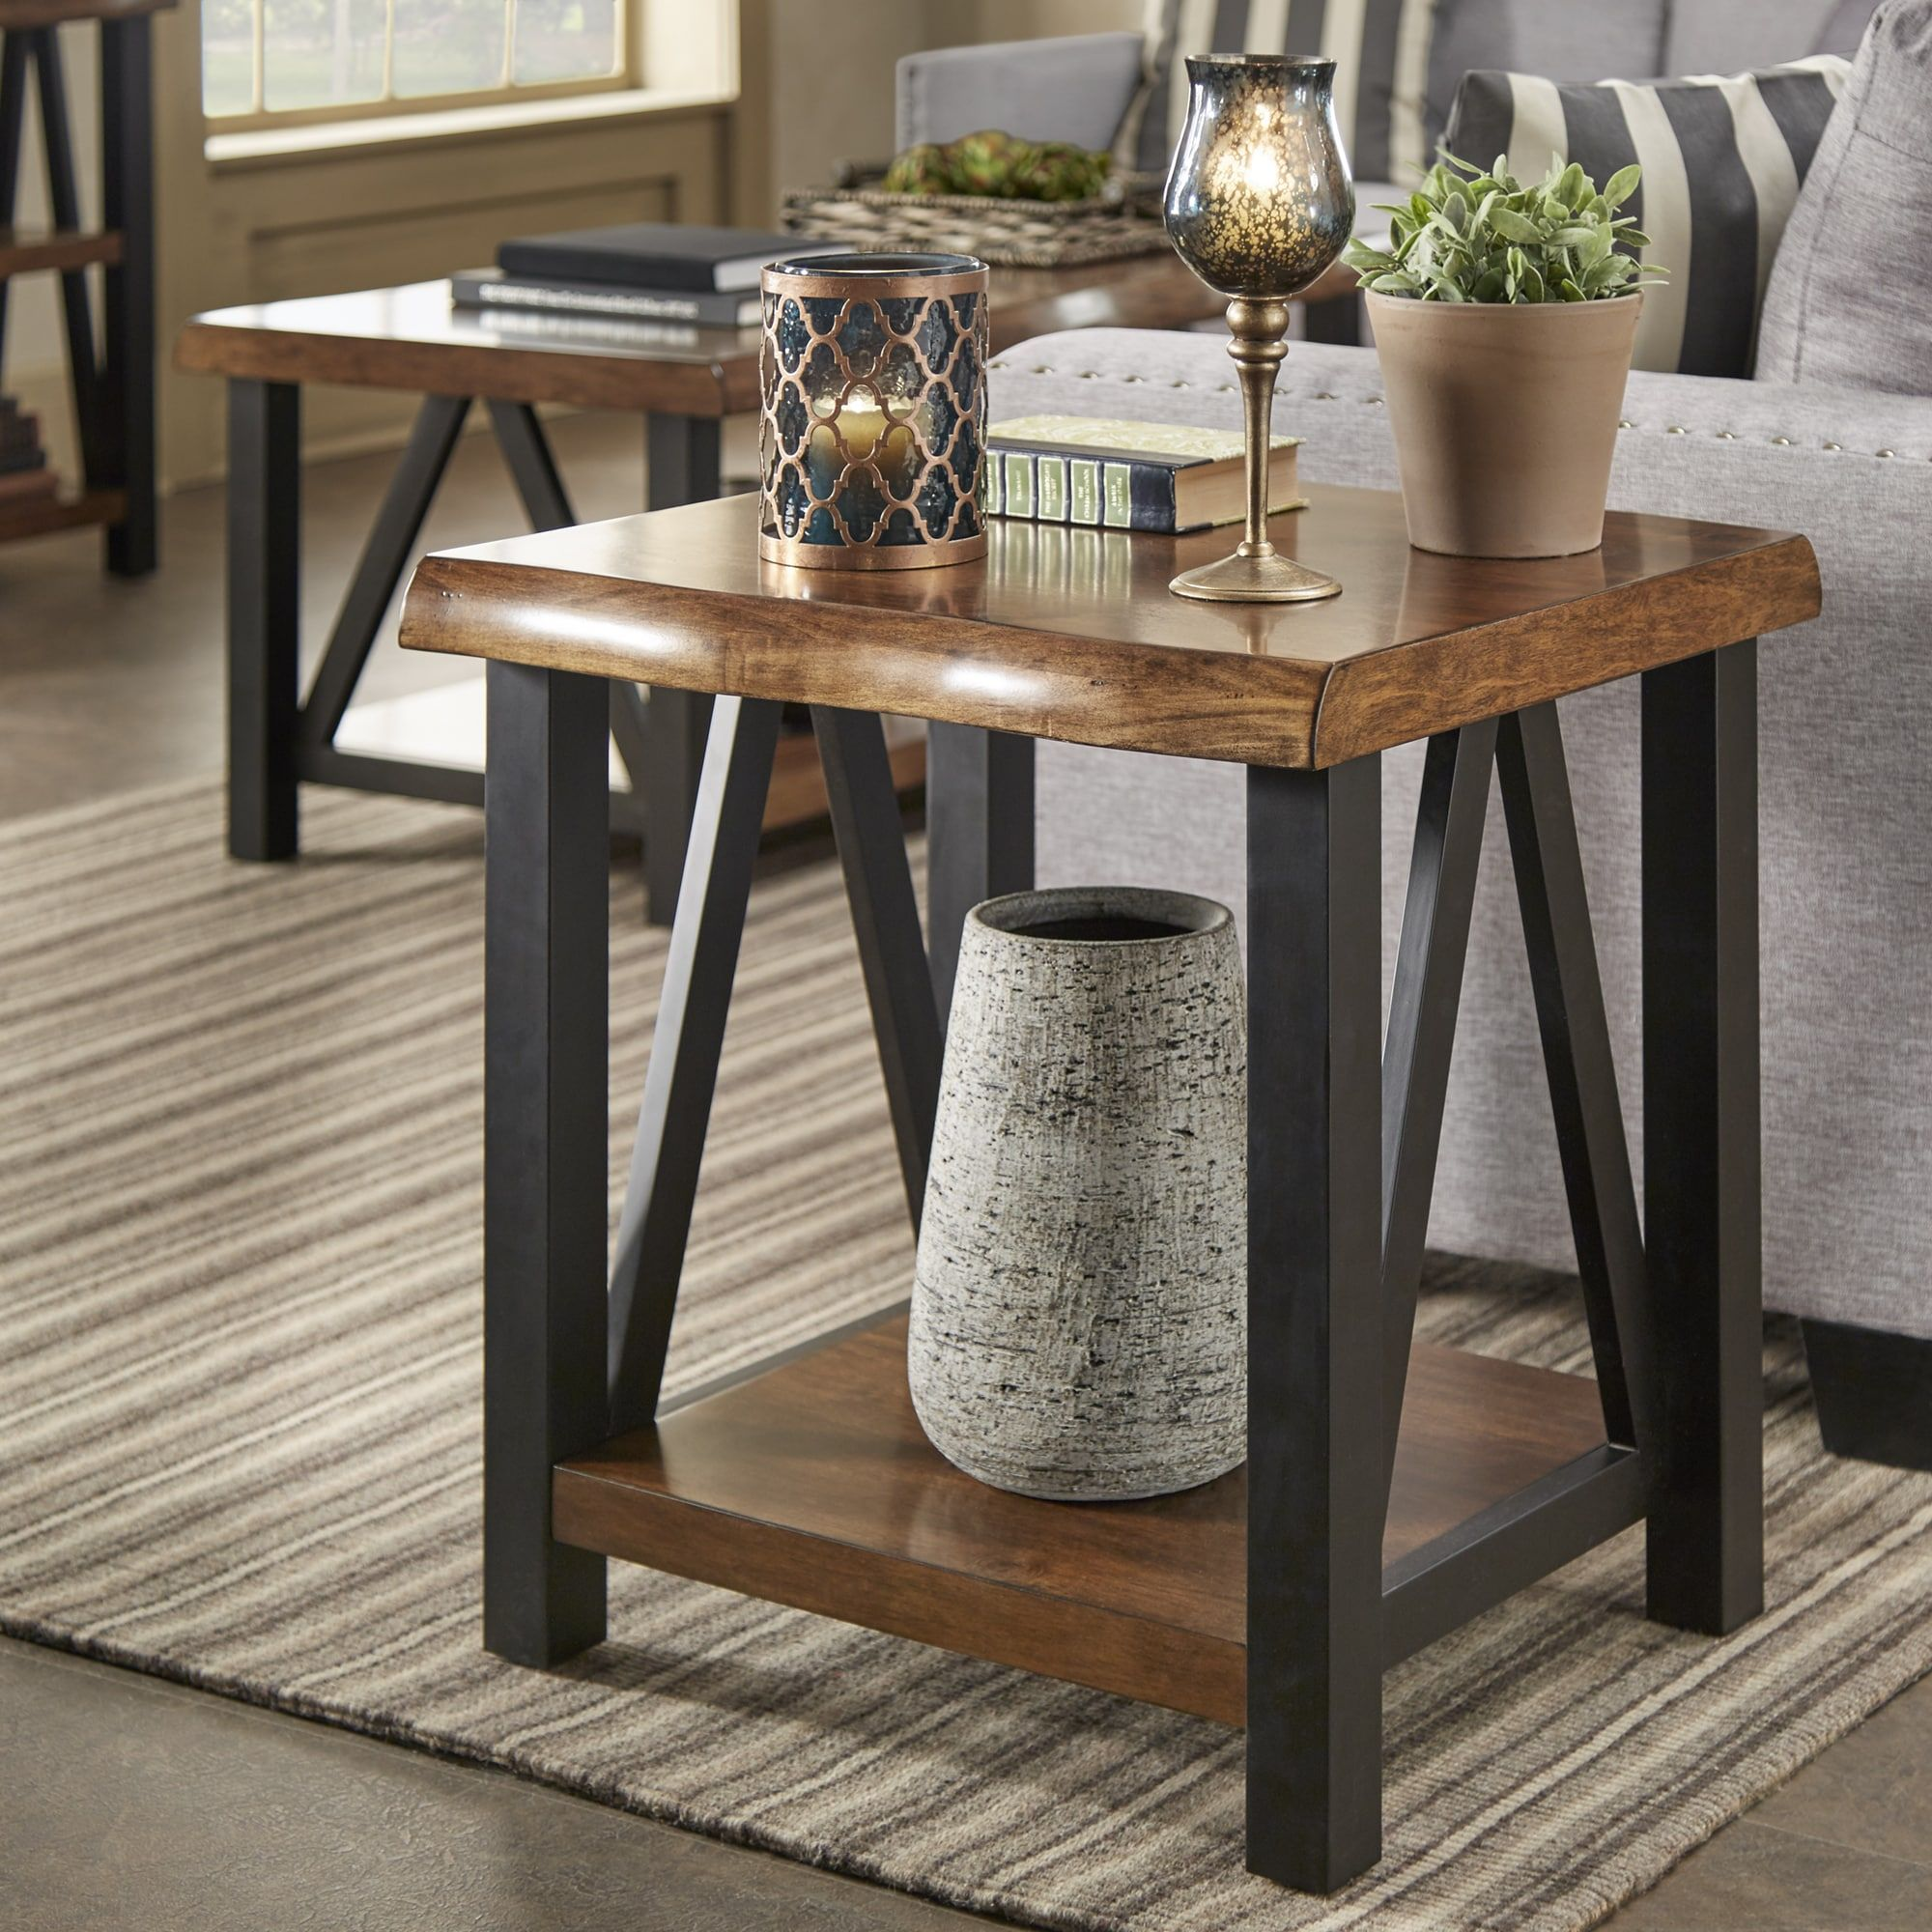 Banyan live edge wood and metal grey accent tables by inspire q artisan end table